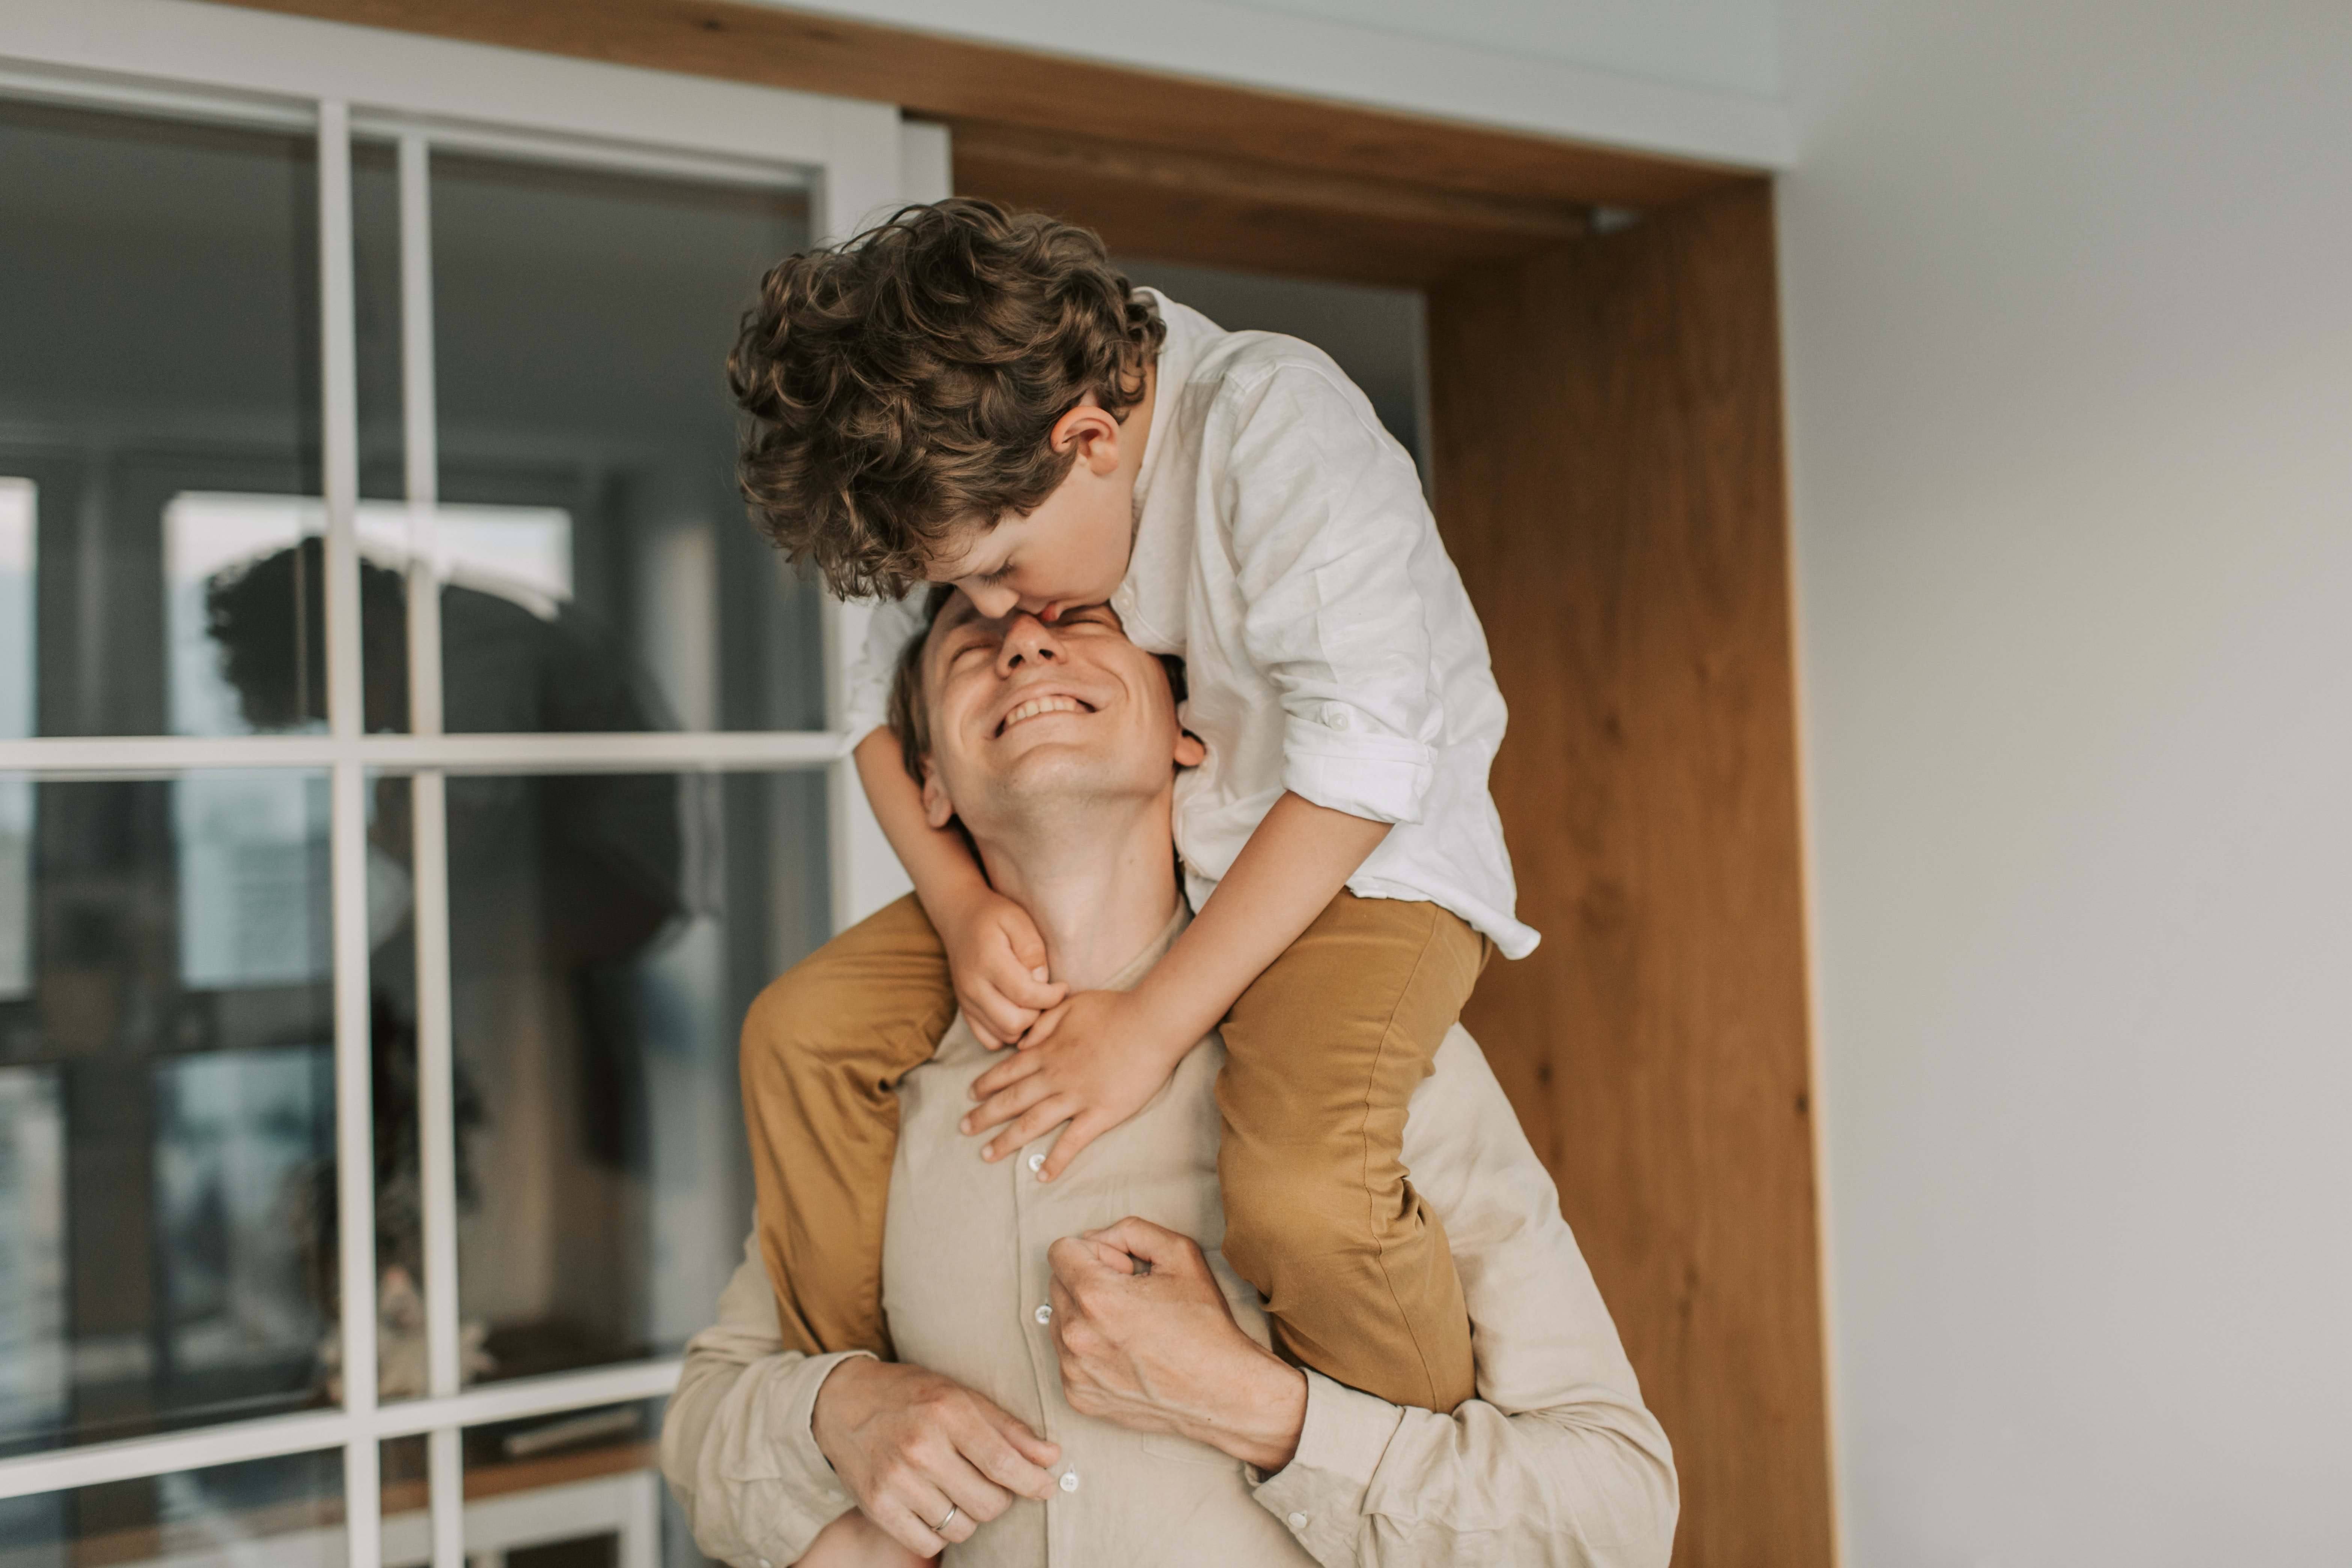 Pictured - A man carrying his son on his shoulders wearing coordinated outfits | Source: Pexels